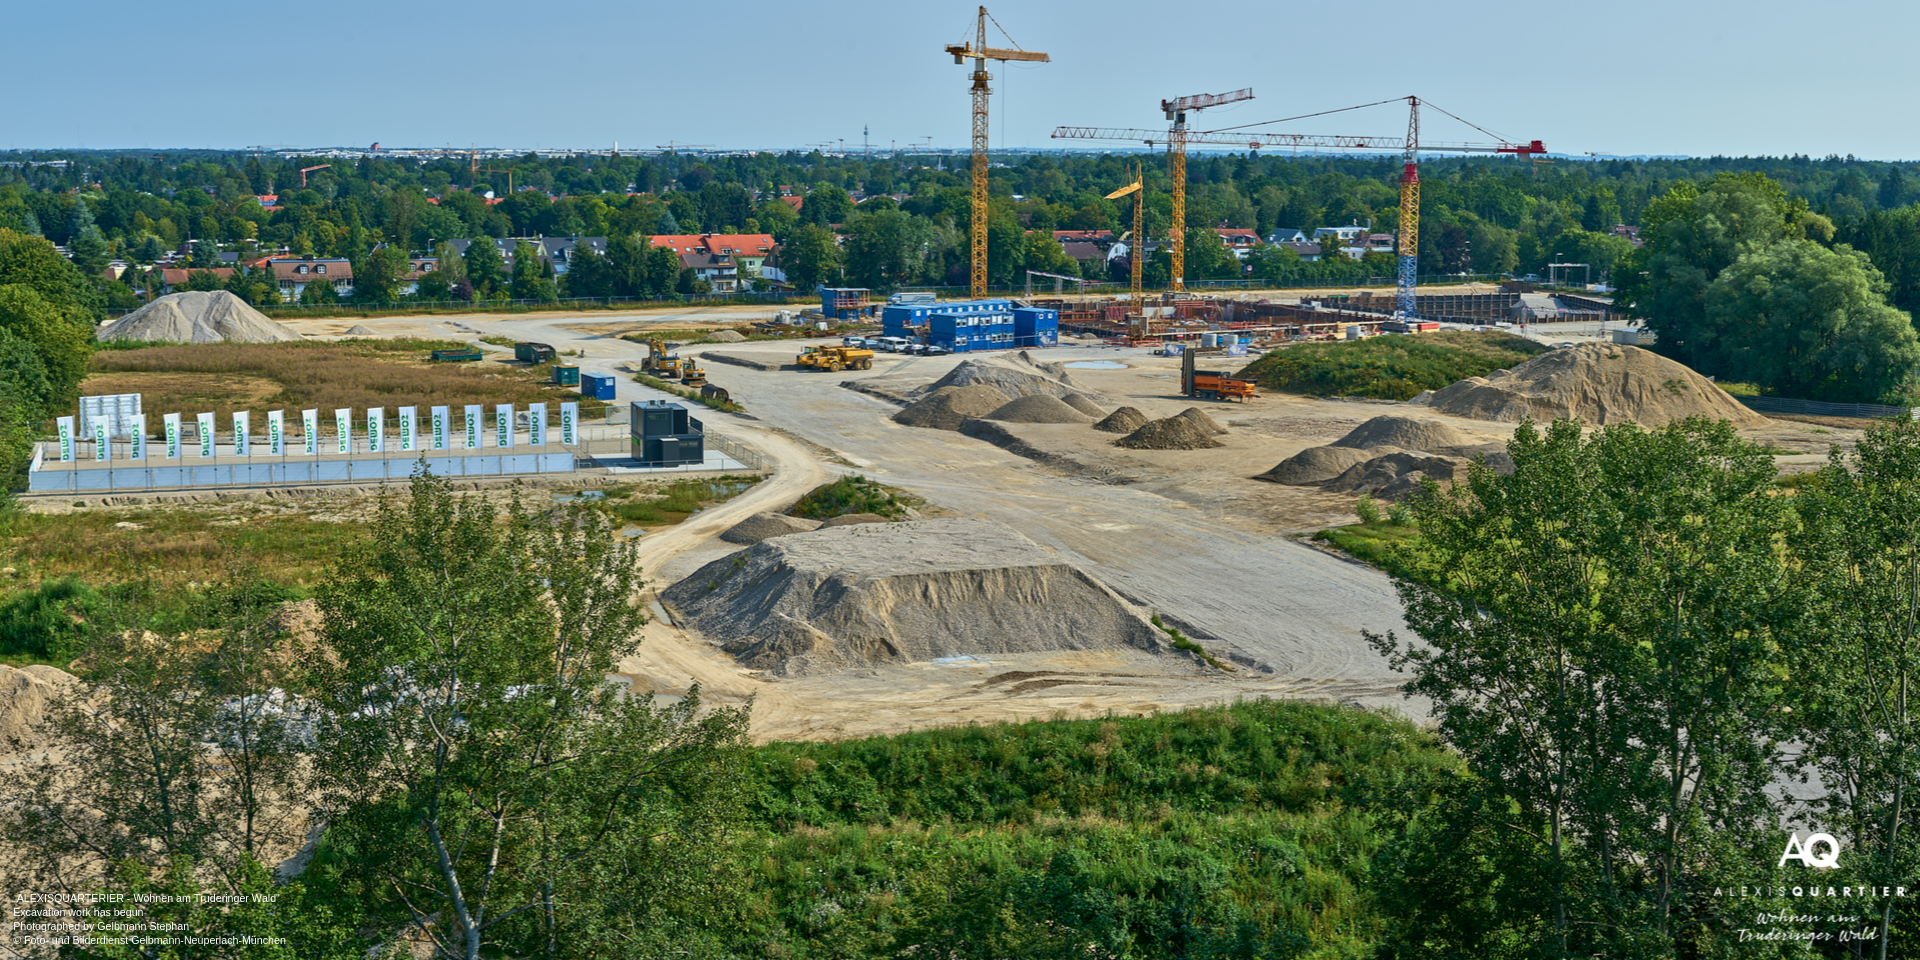 'ALEXISQUARTIER – Wohnen am Truderinger Wald' in Munich-Perlach: Excavation work has begun